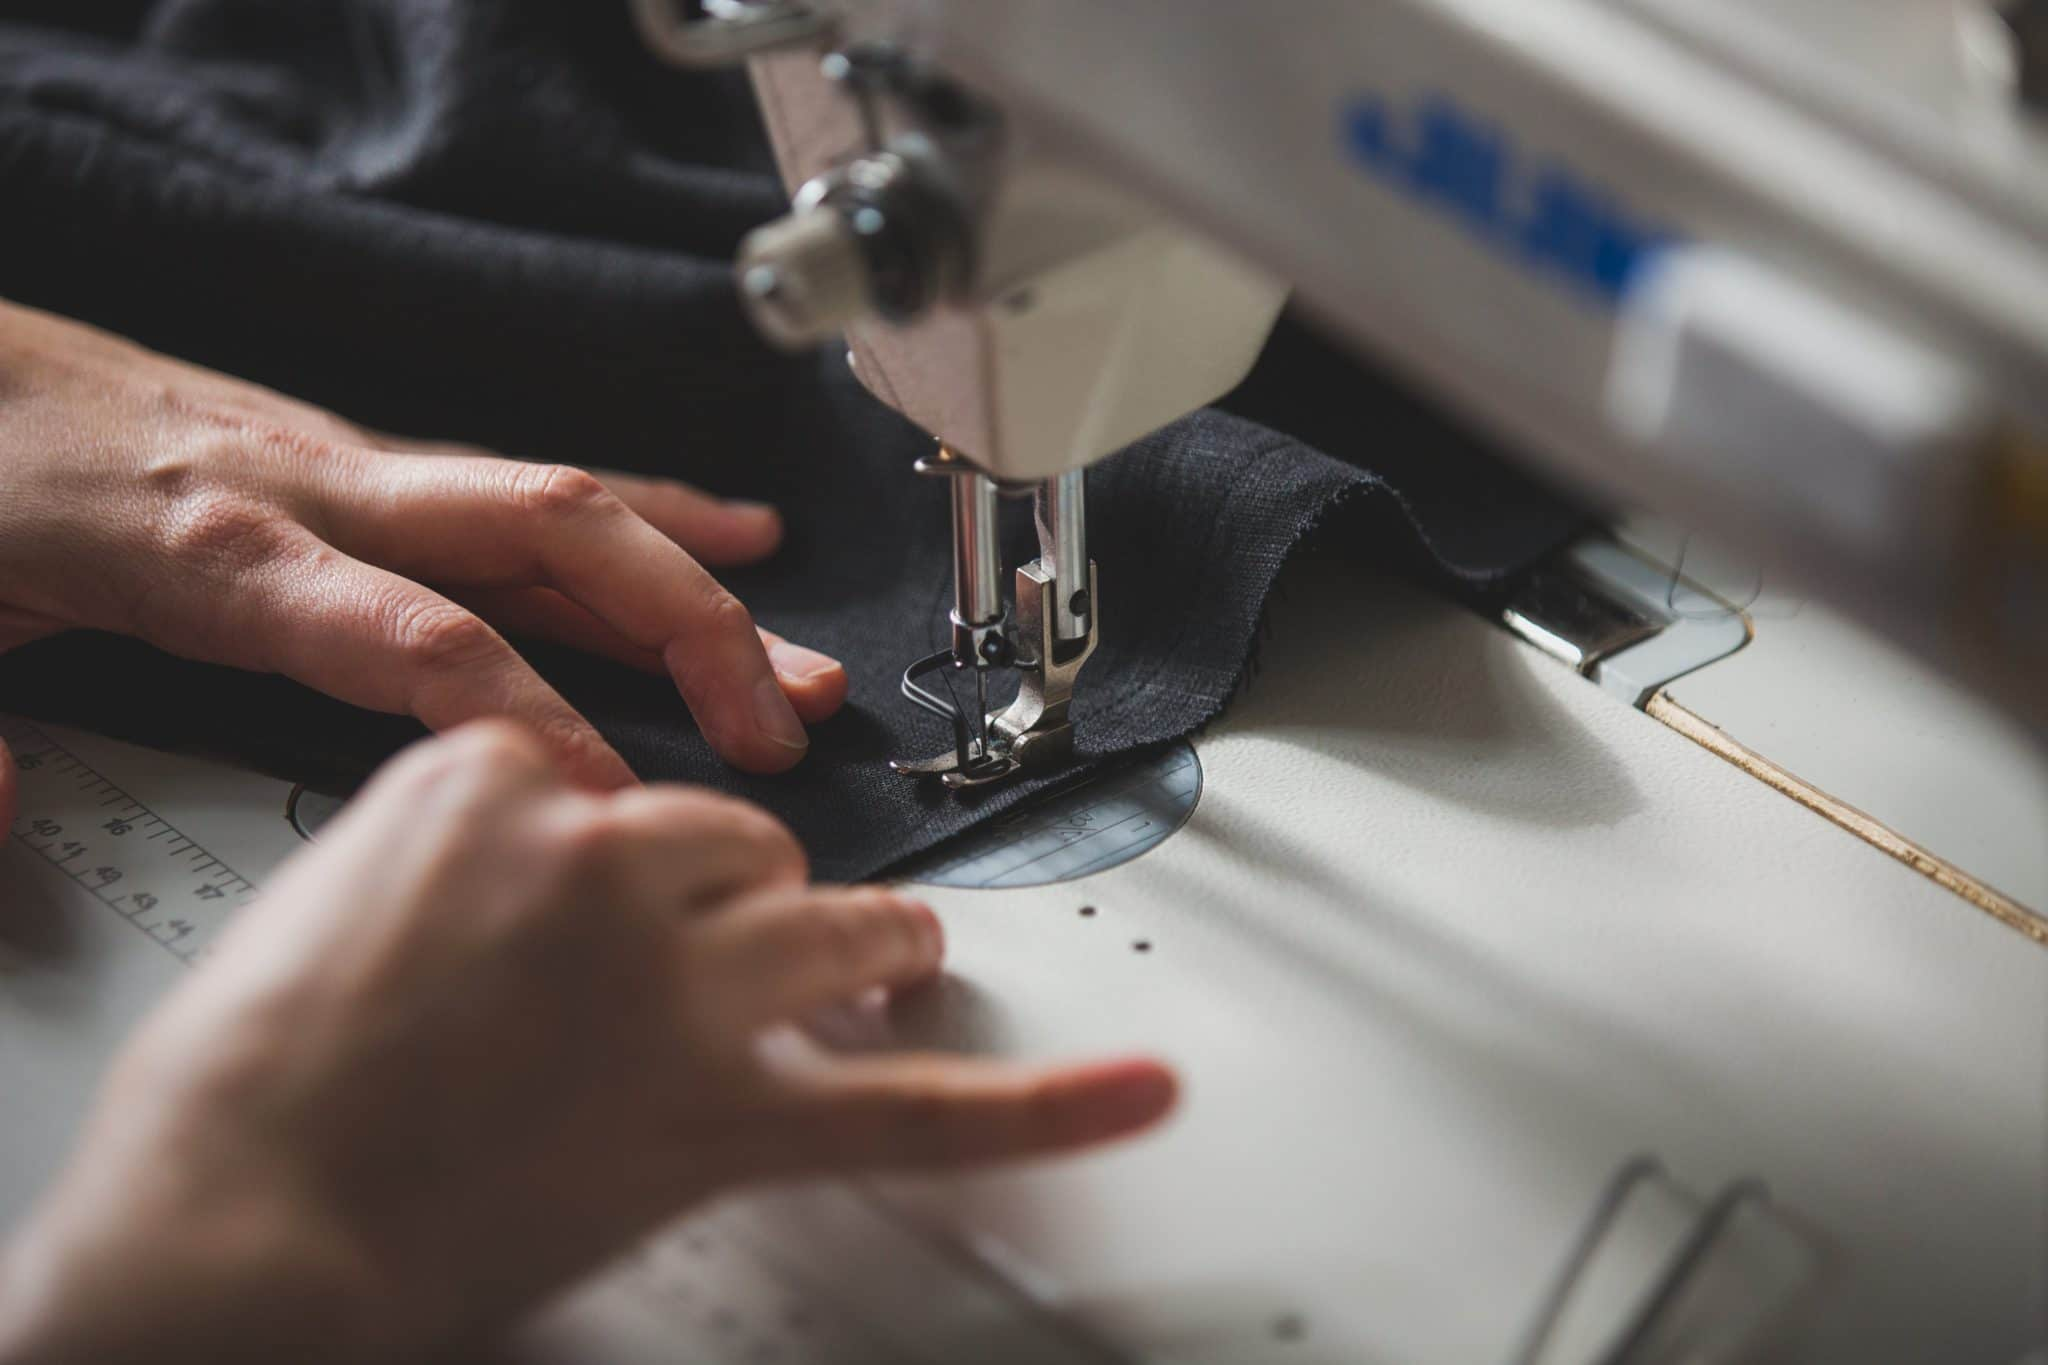 angled-view-of-sewing-machine-use.jpg